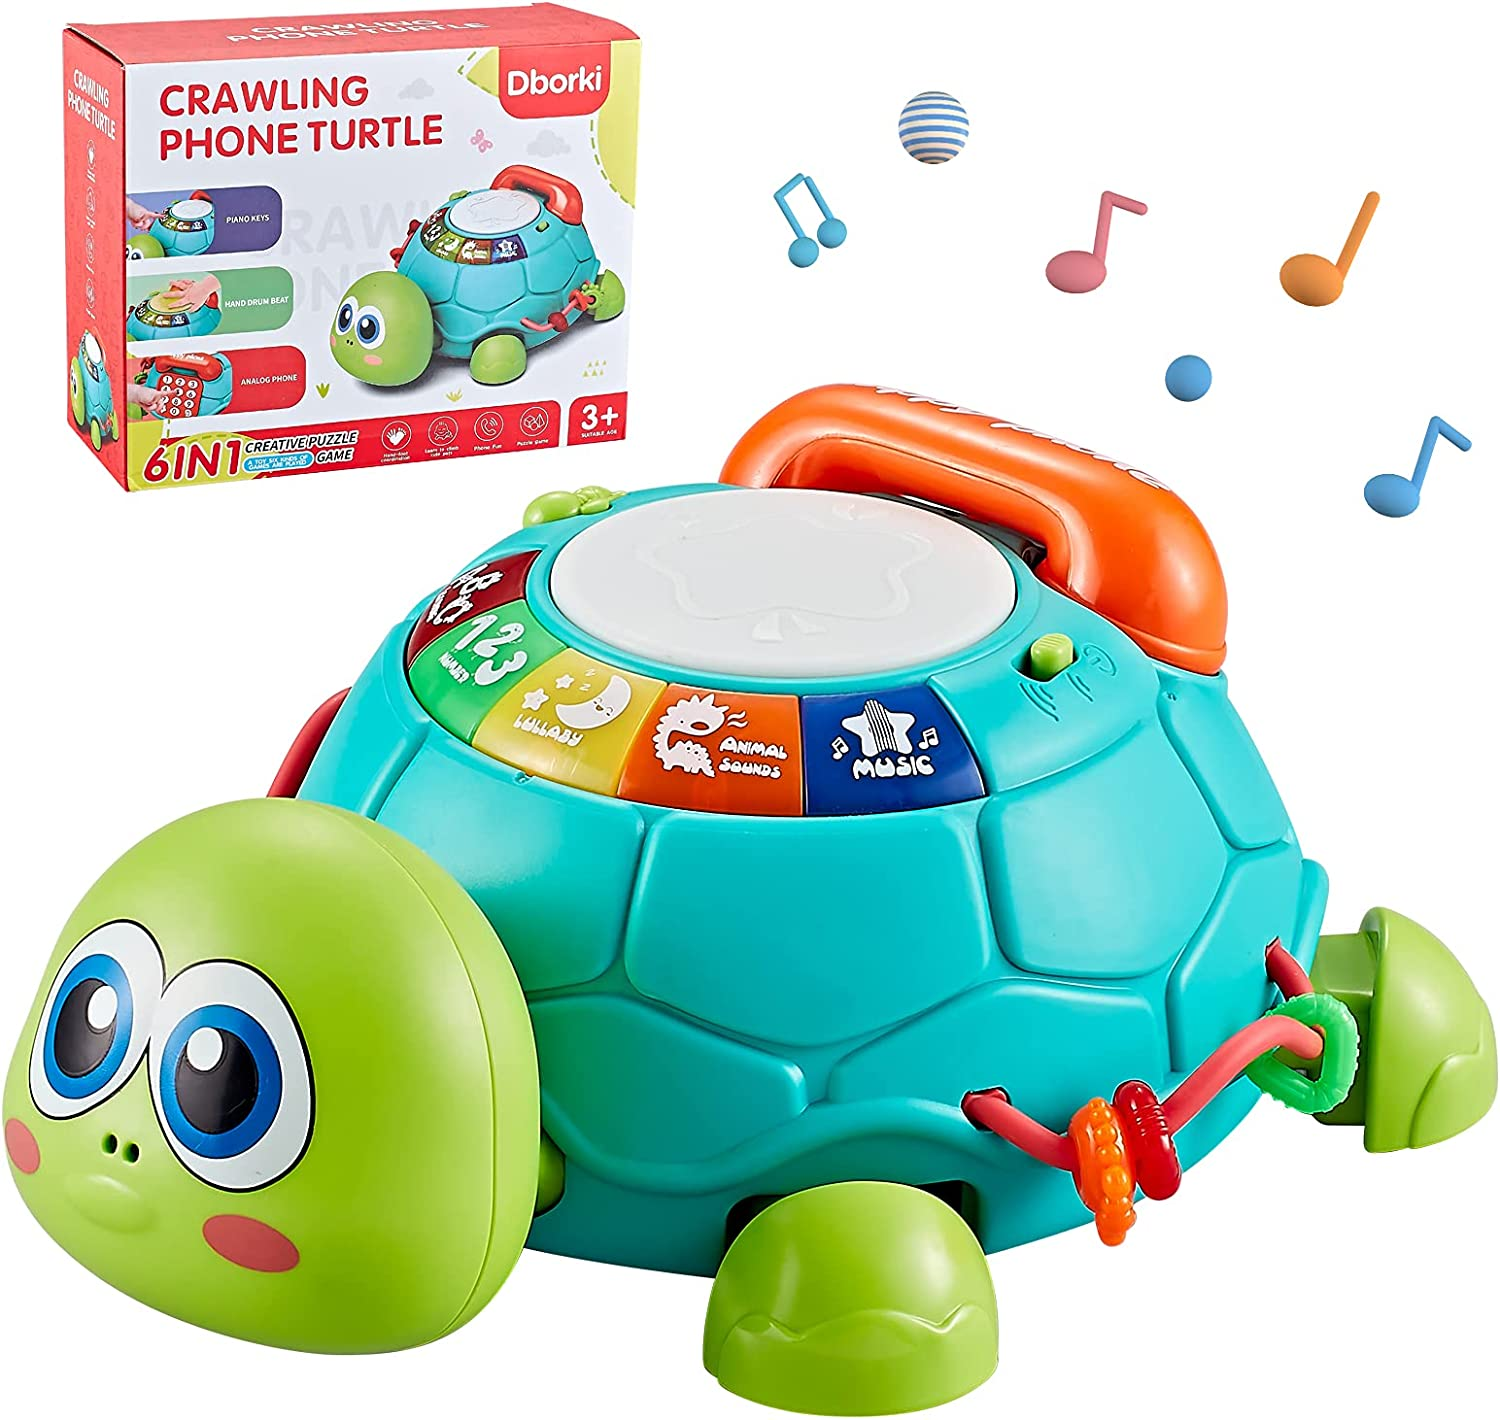 Bu-buildup Musical Turtle Toy, Baby Crawling Toys with Music and LED Lights, Toys to Encourage Crawling, Baby Toy with Music and LED Lights for Boys & Girl 6 Months+